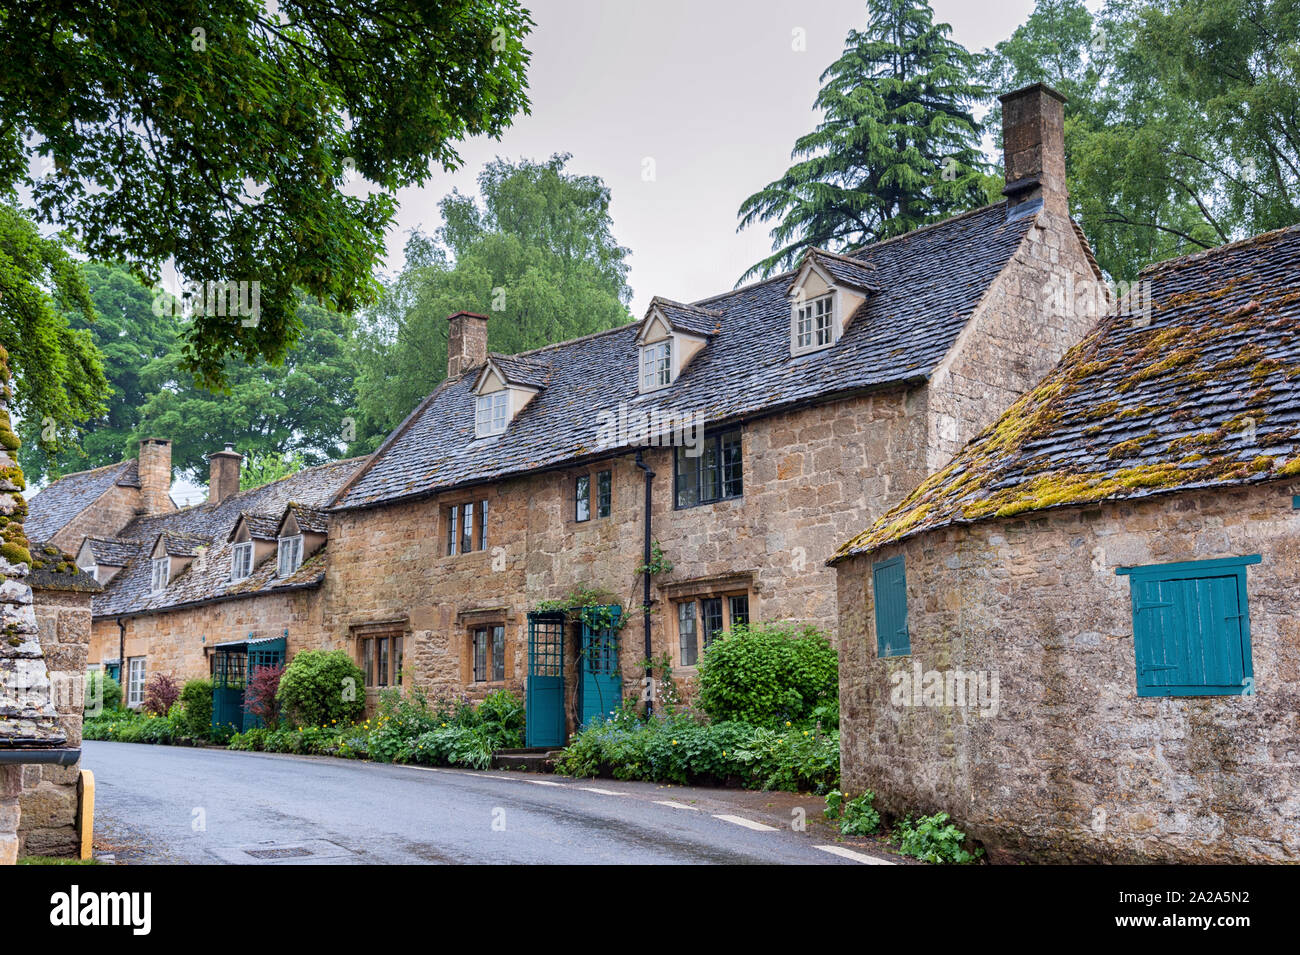 Typical pretty cottages with climbing plants with yellow Cotswold limestone walls and slate roof with garden of roses in Snowshill, Cotswolds England Stock Photo